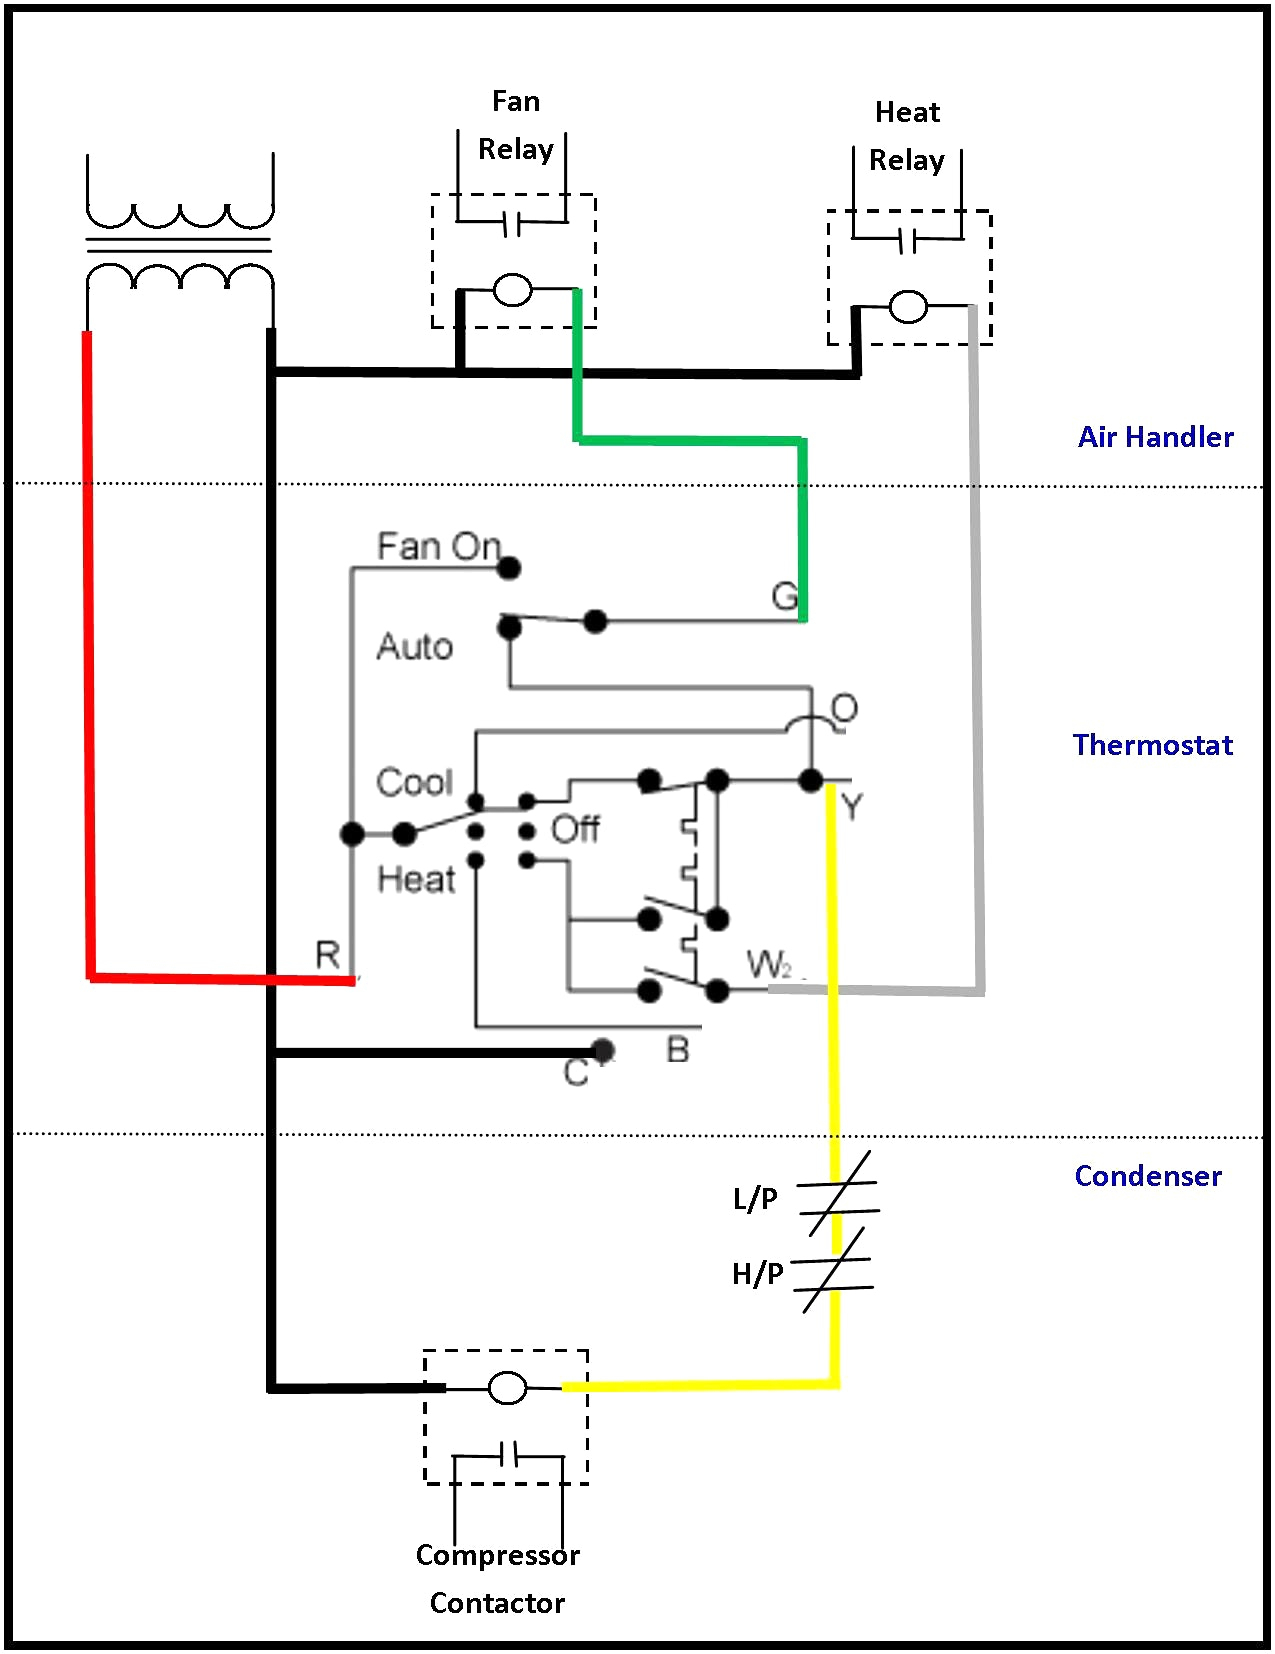 277 Volt Wiring Diagram Inside - Roc-Grp - 277 Volt Wiring Diagram